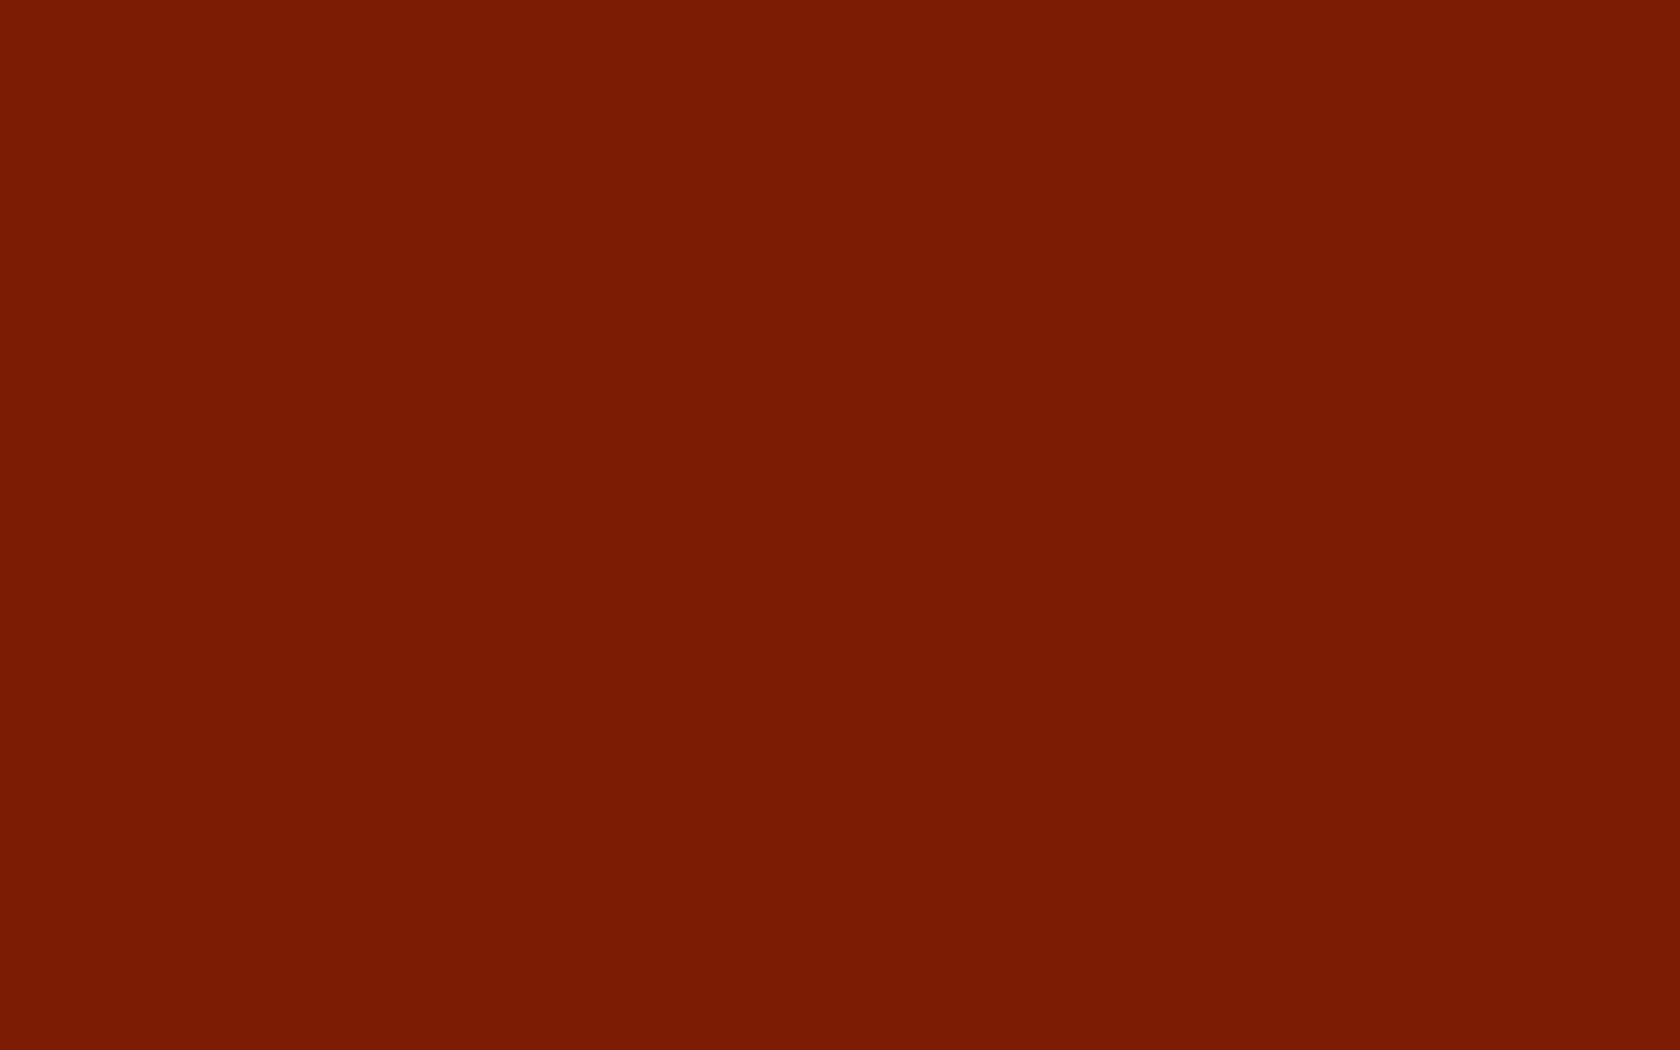 1680x1050 Kenyan Copper Solid Color Background